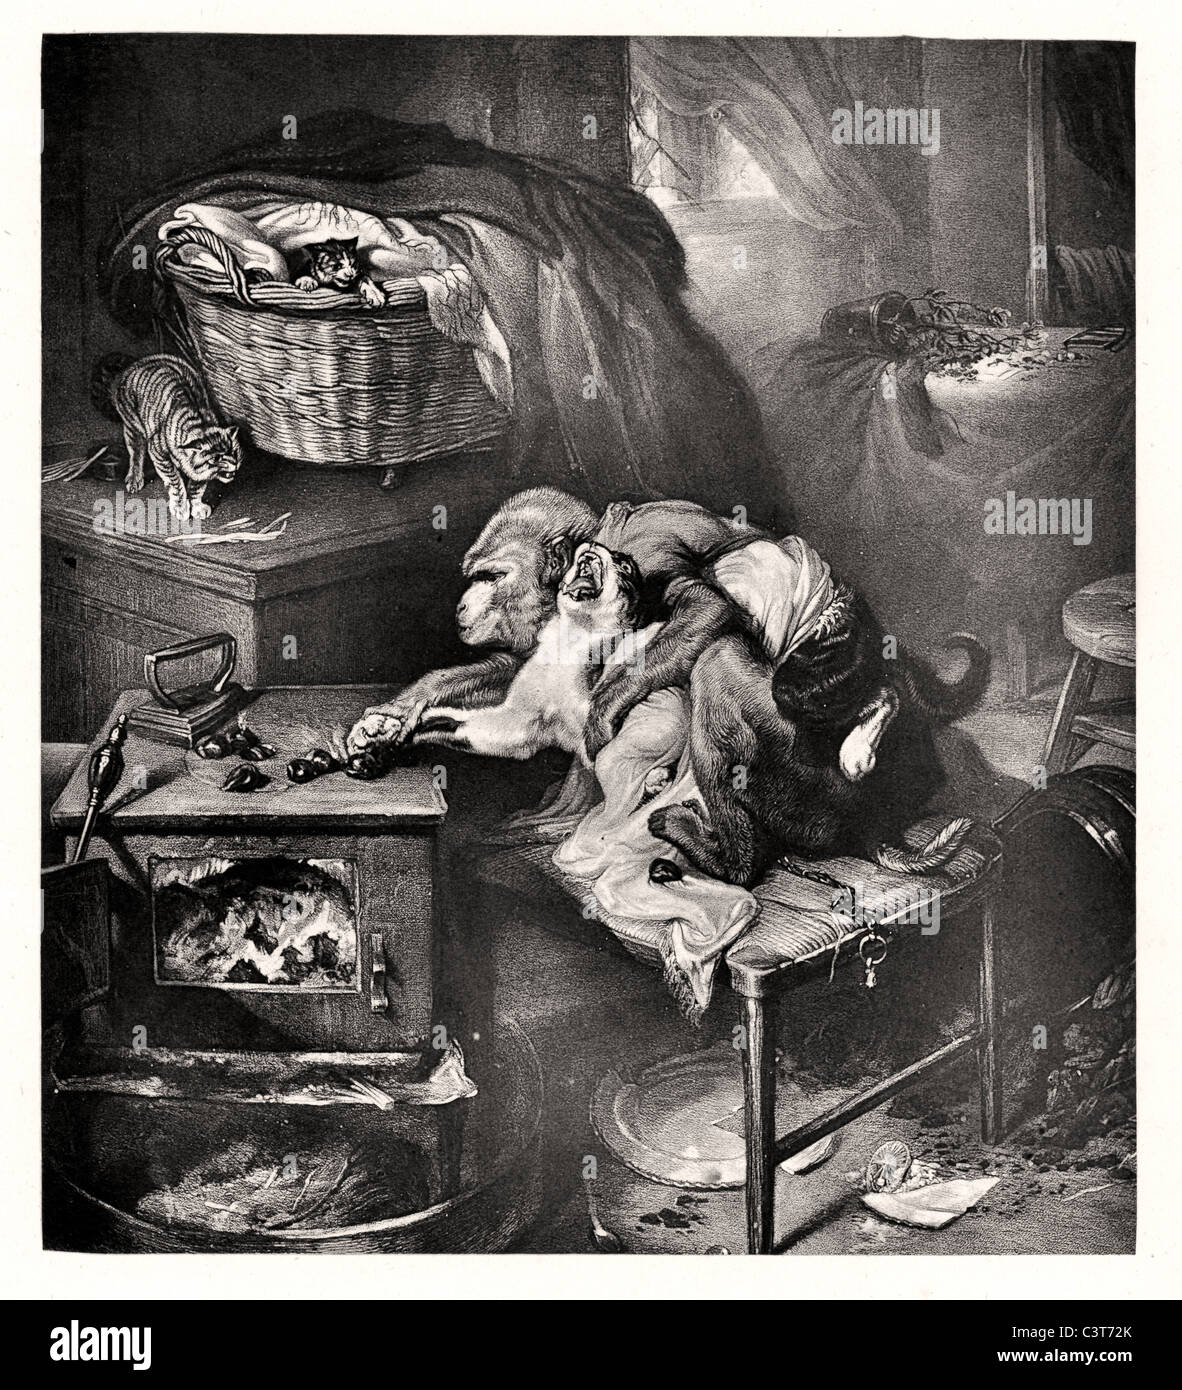 The Cat's Paw by Edwin Landseer derived from La Fontaine's fable, 'The Monkey and the Cat'. - Stock Image